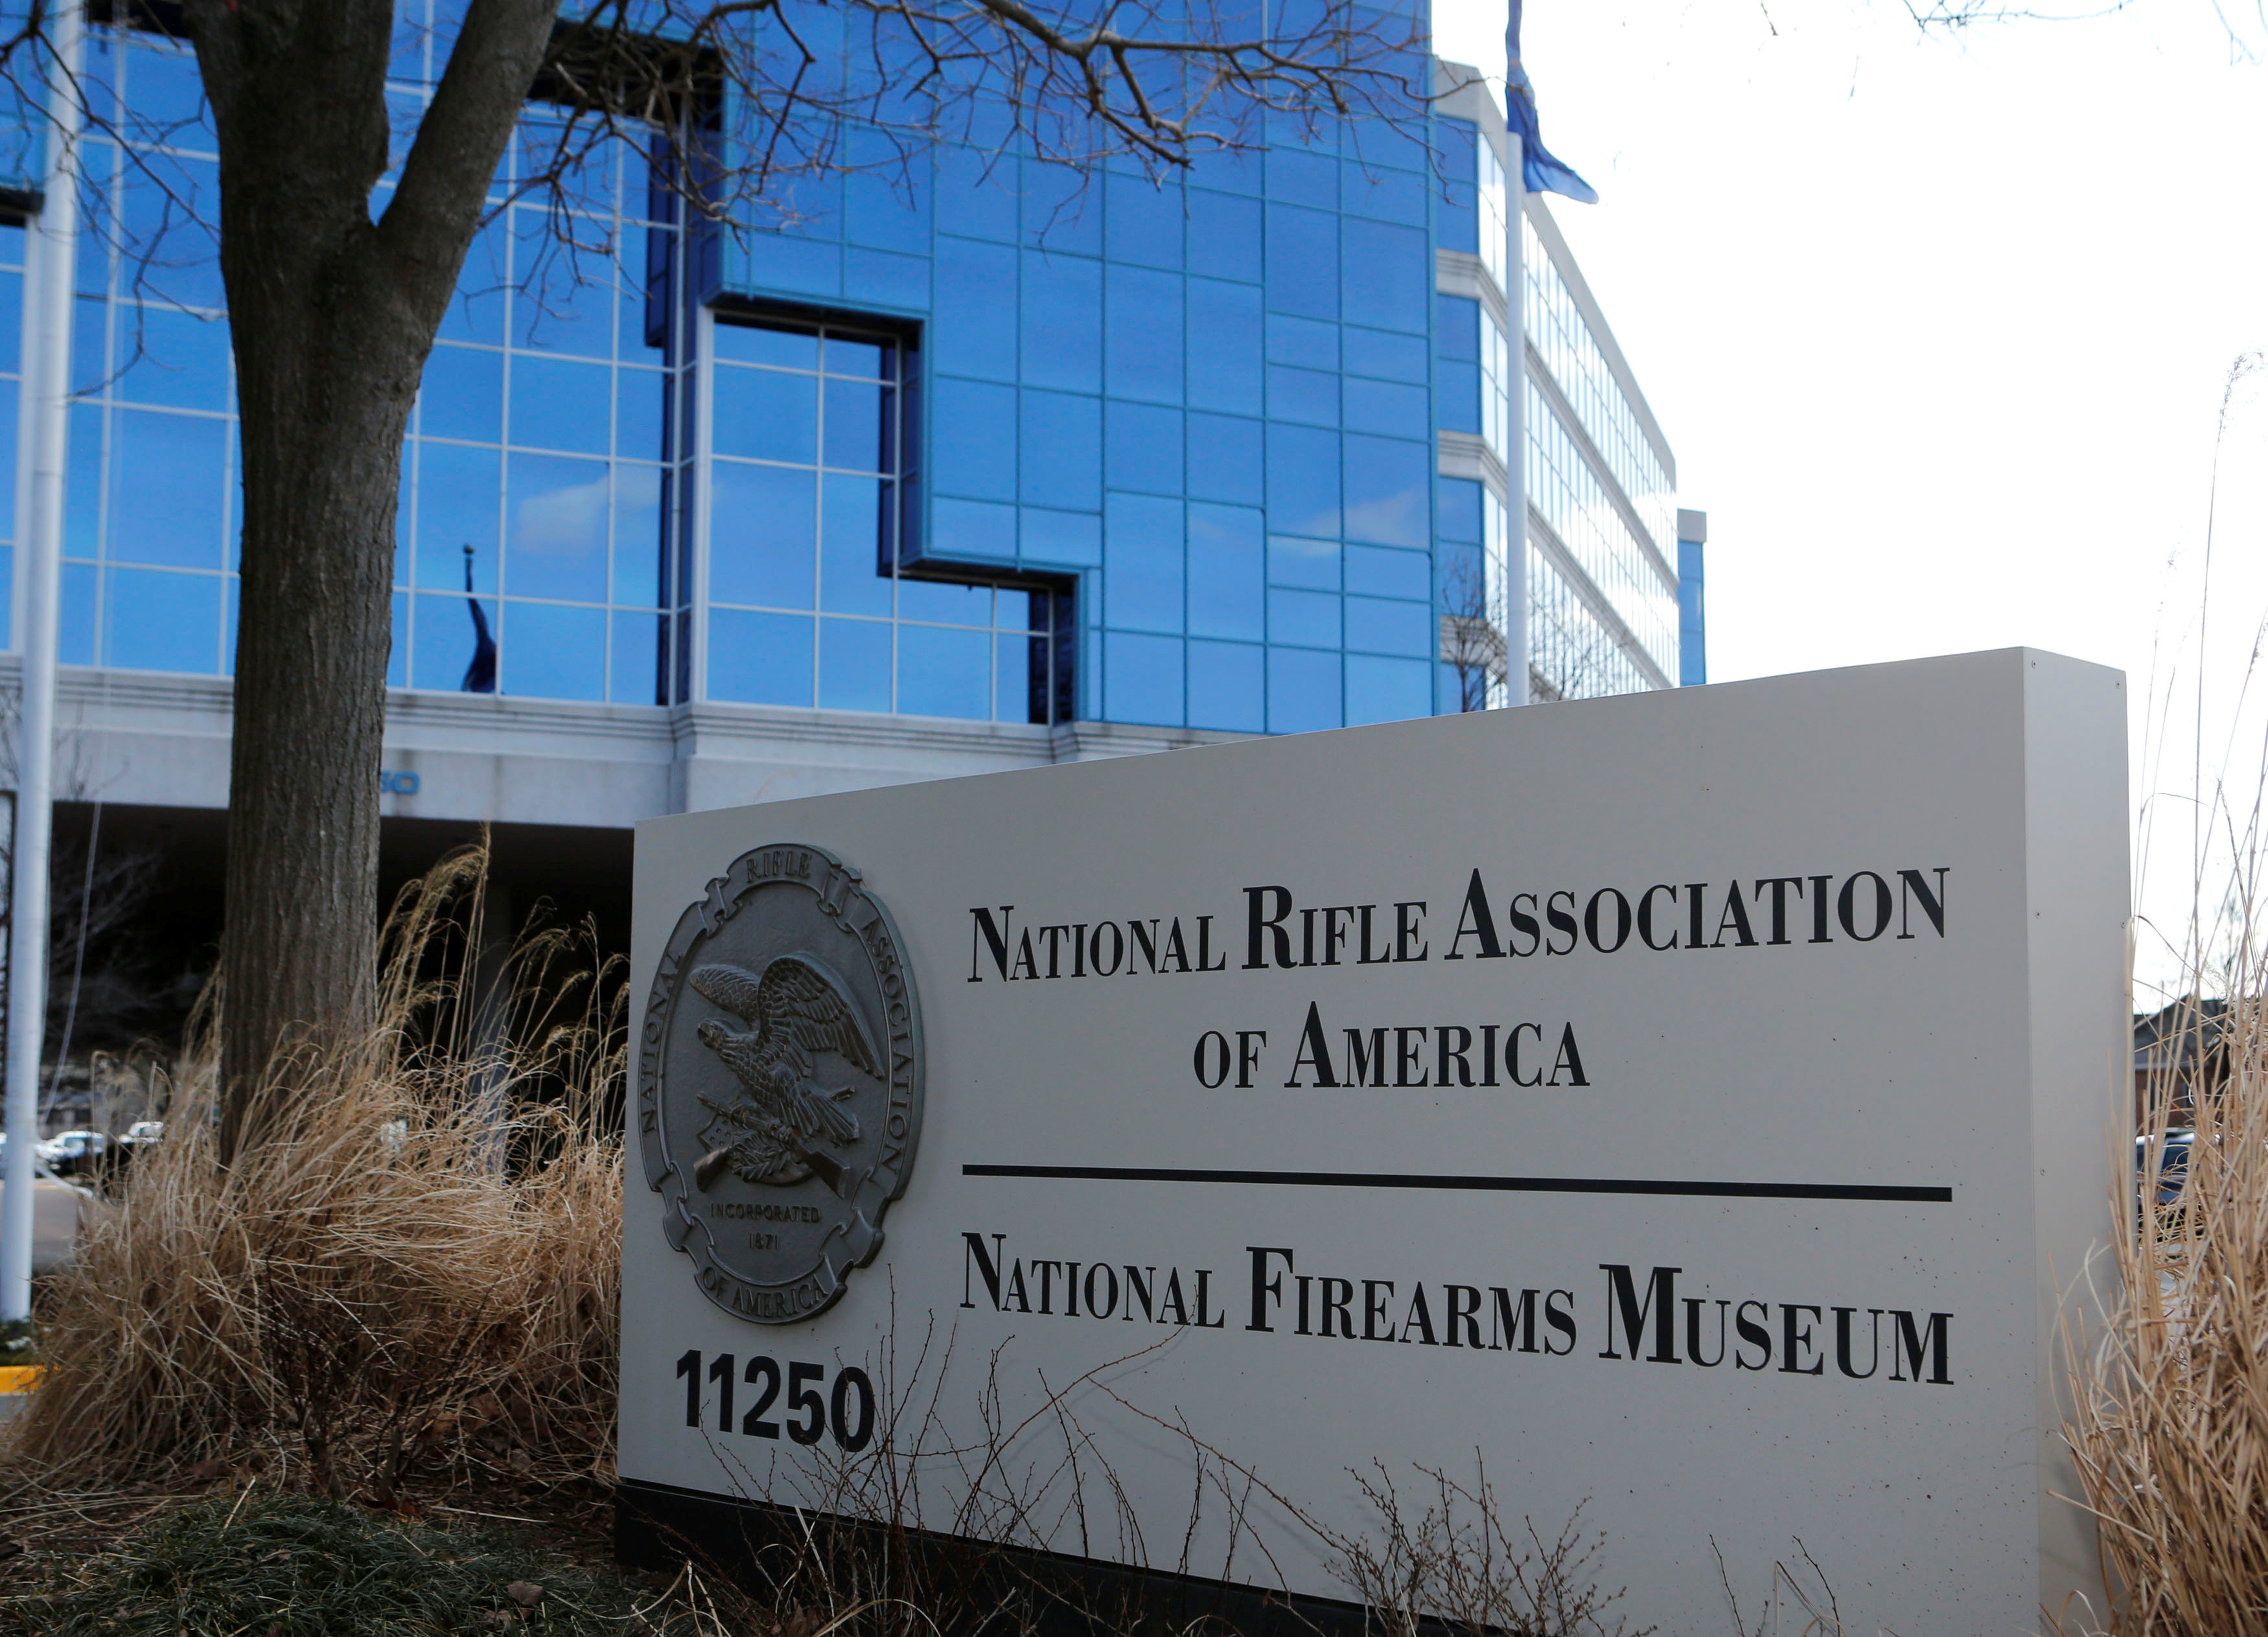 FILE PHOTO: A sign of the National Rifle Association (NRA) is seen in front of their headquarters in Fairfax, Virginia, U.S. on March 14, 2013. REUTERS/Larry Downing/File Photo